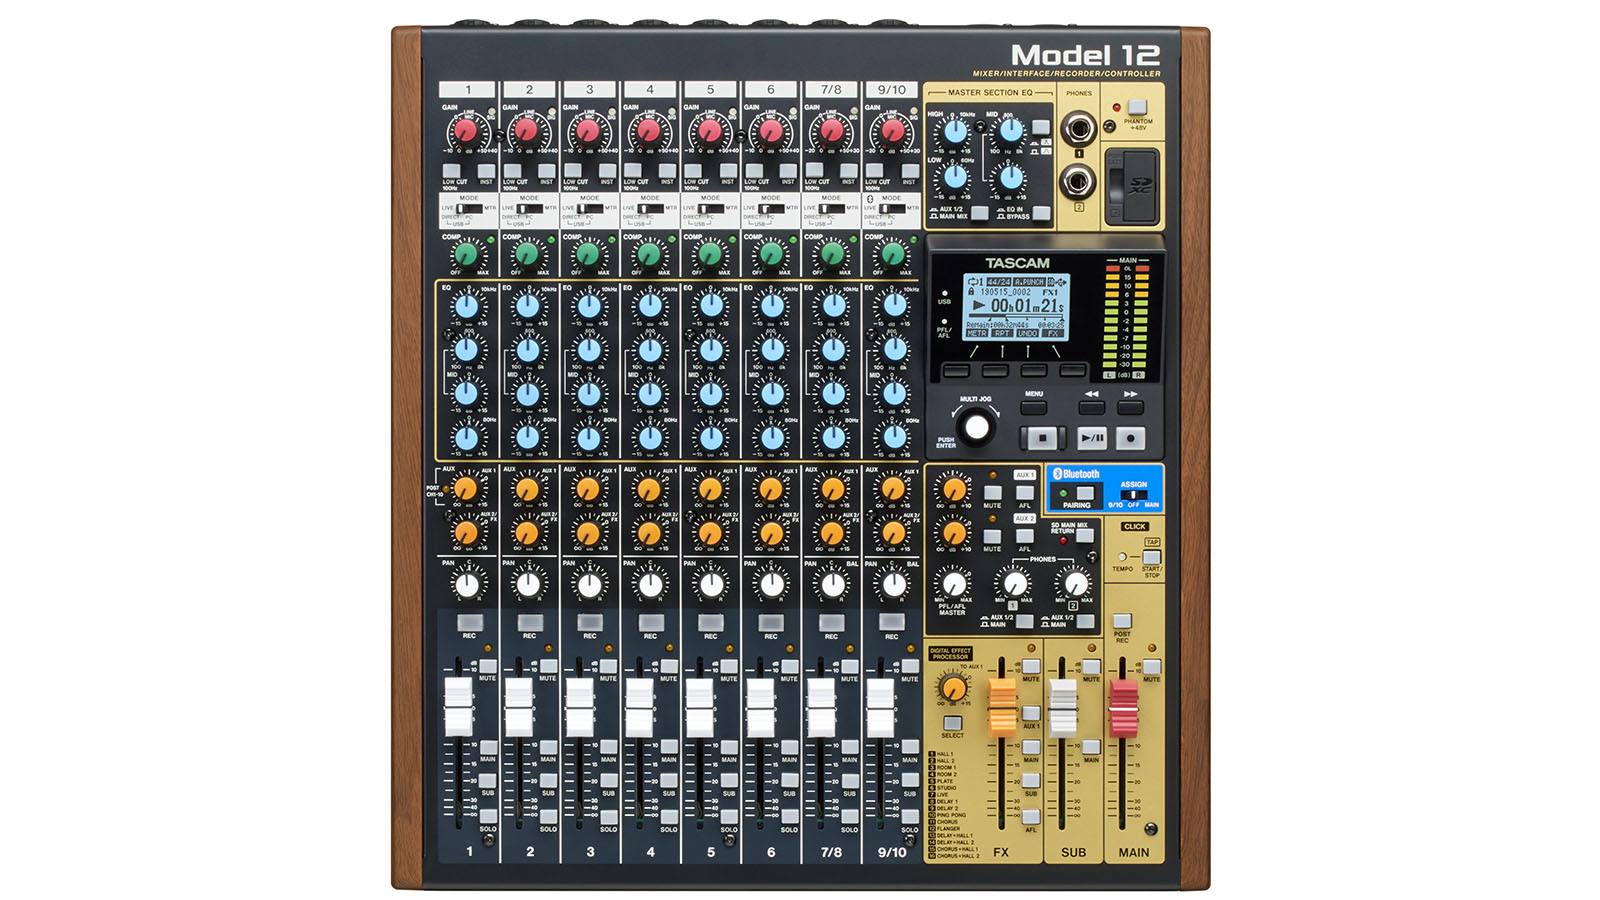 TASCAM Ships Model 12 Audio and Multimedia Production Switcher